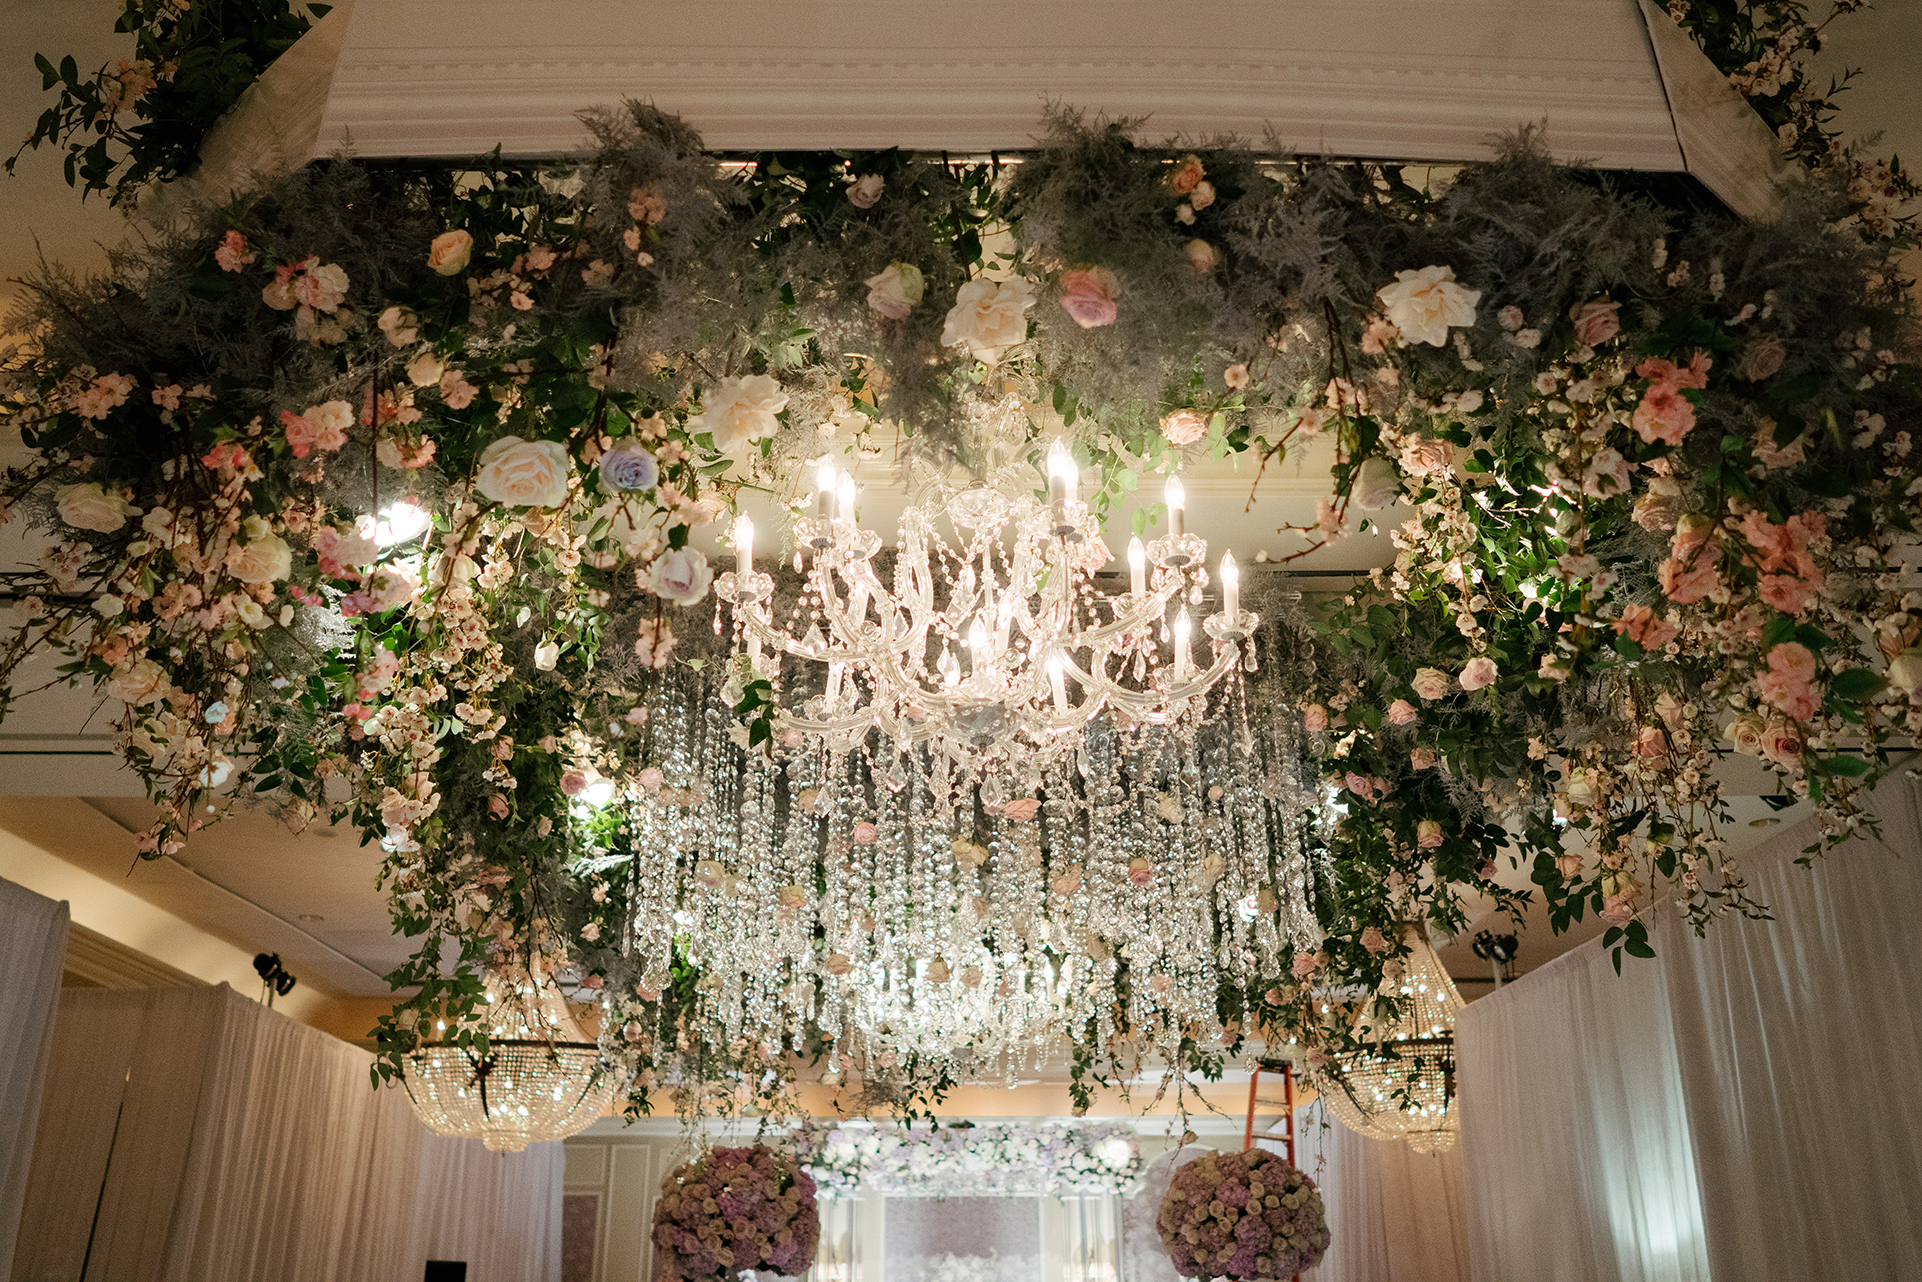 Wedding Decor, Floral Ceiling Treatment, Todd Events, Hotel Wedding, Houstonian Hotel, Chandelier